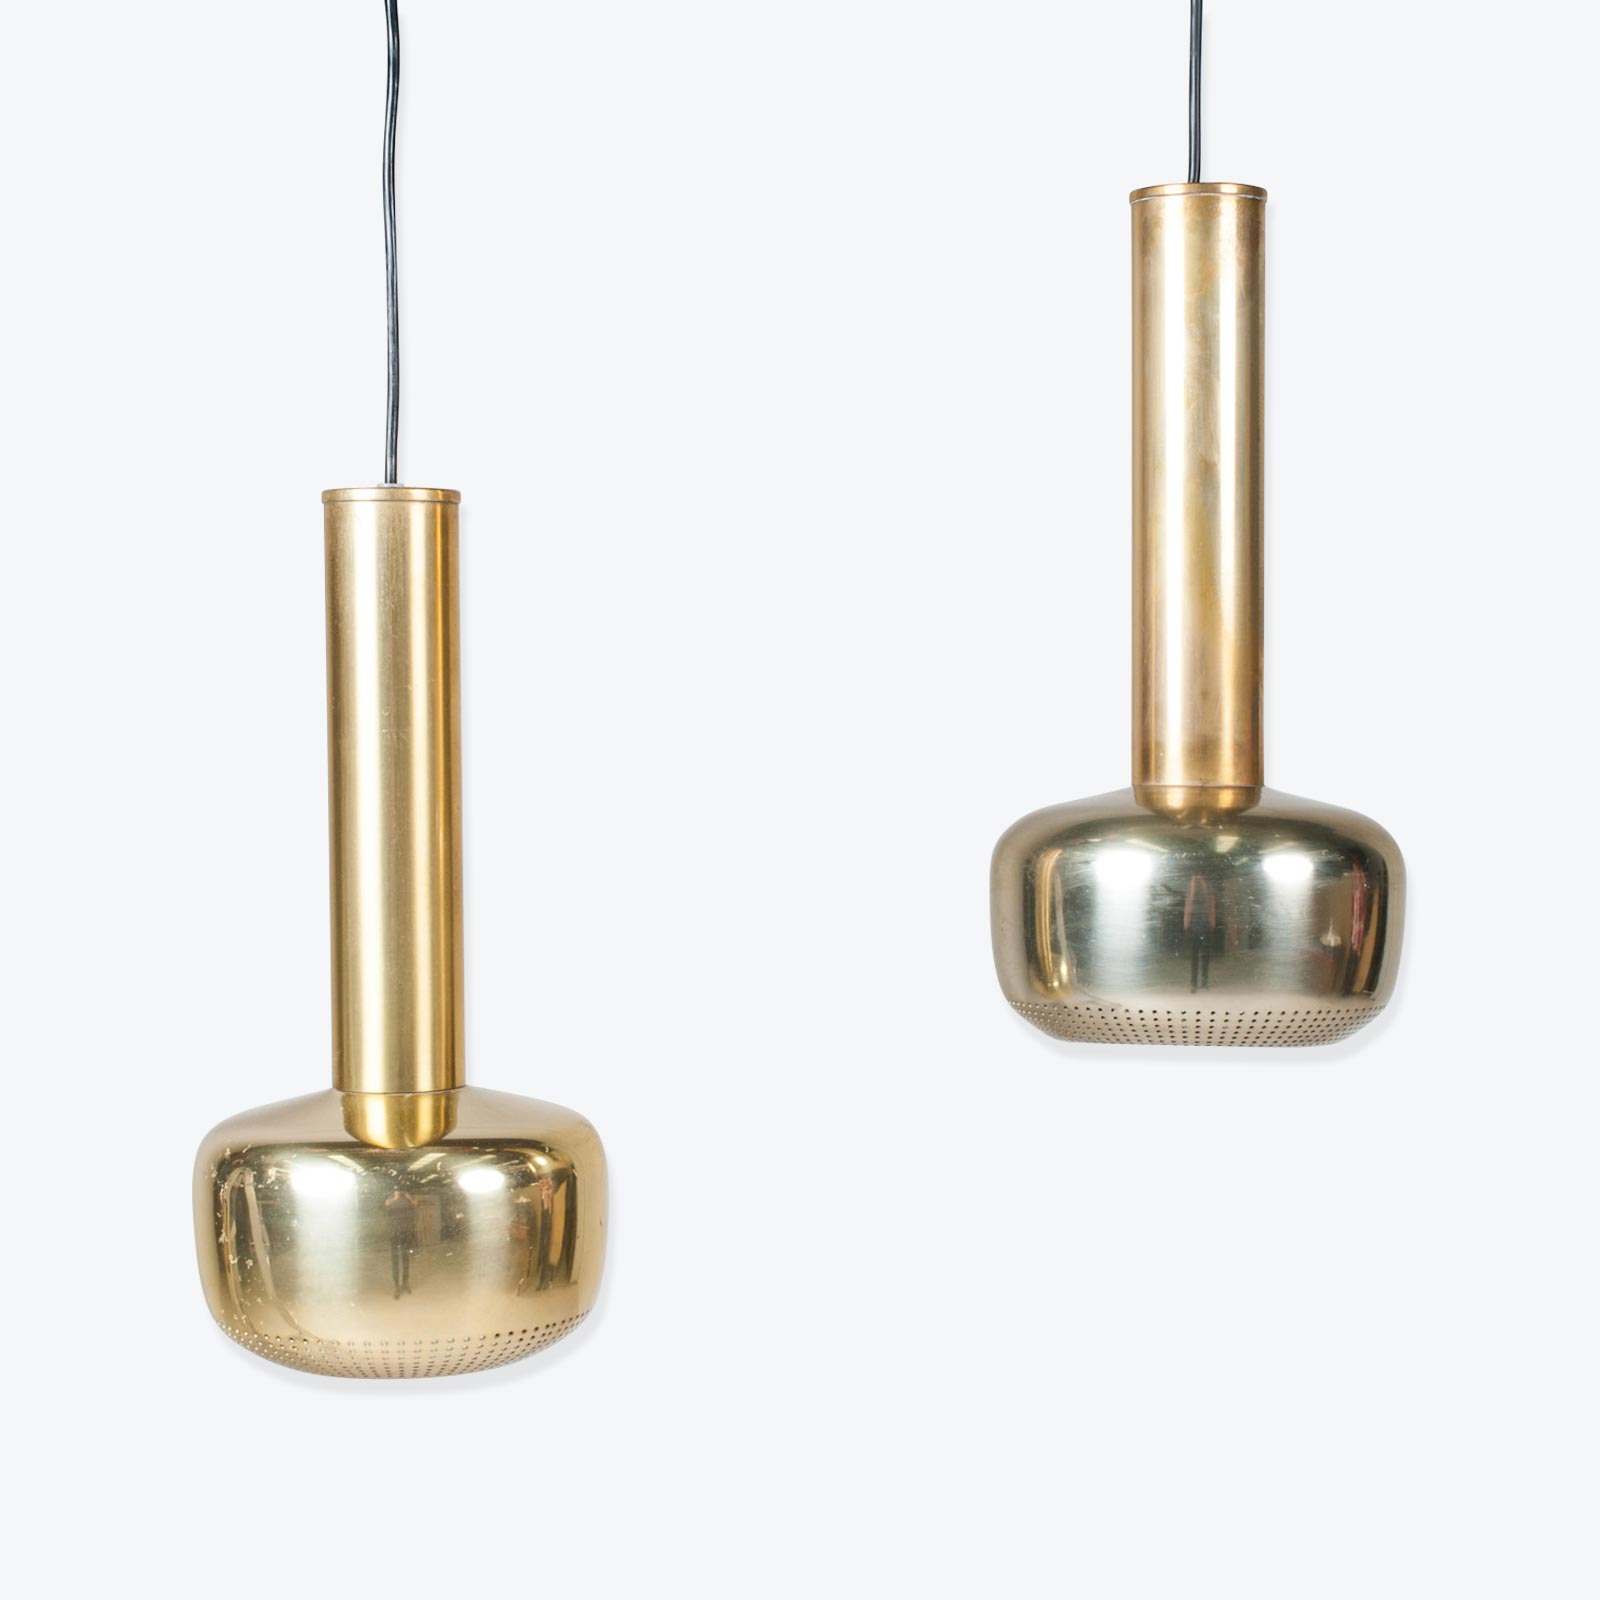 Pair Of Gold Pendants By Vilhelm Lauritzen For Louis Poulsen 1950s Denmark 01